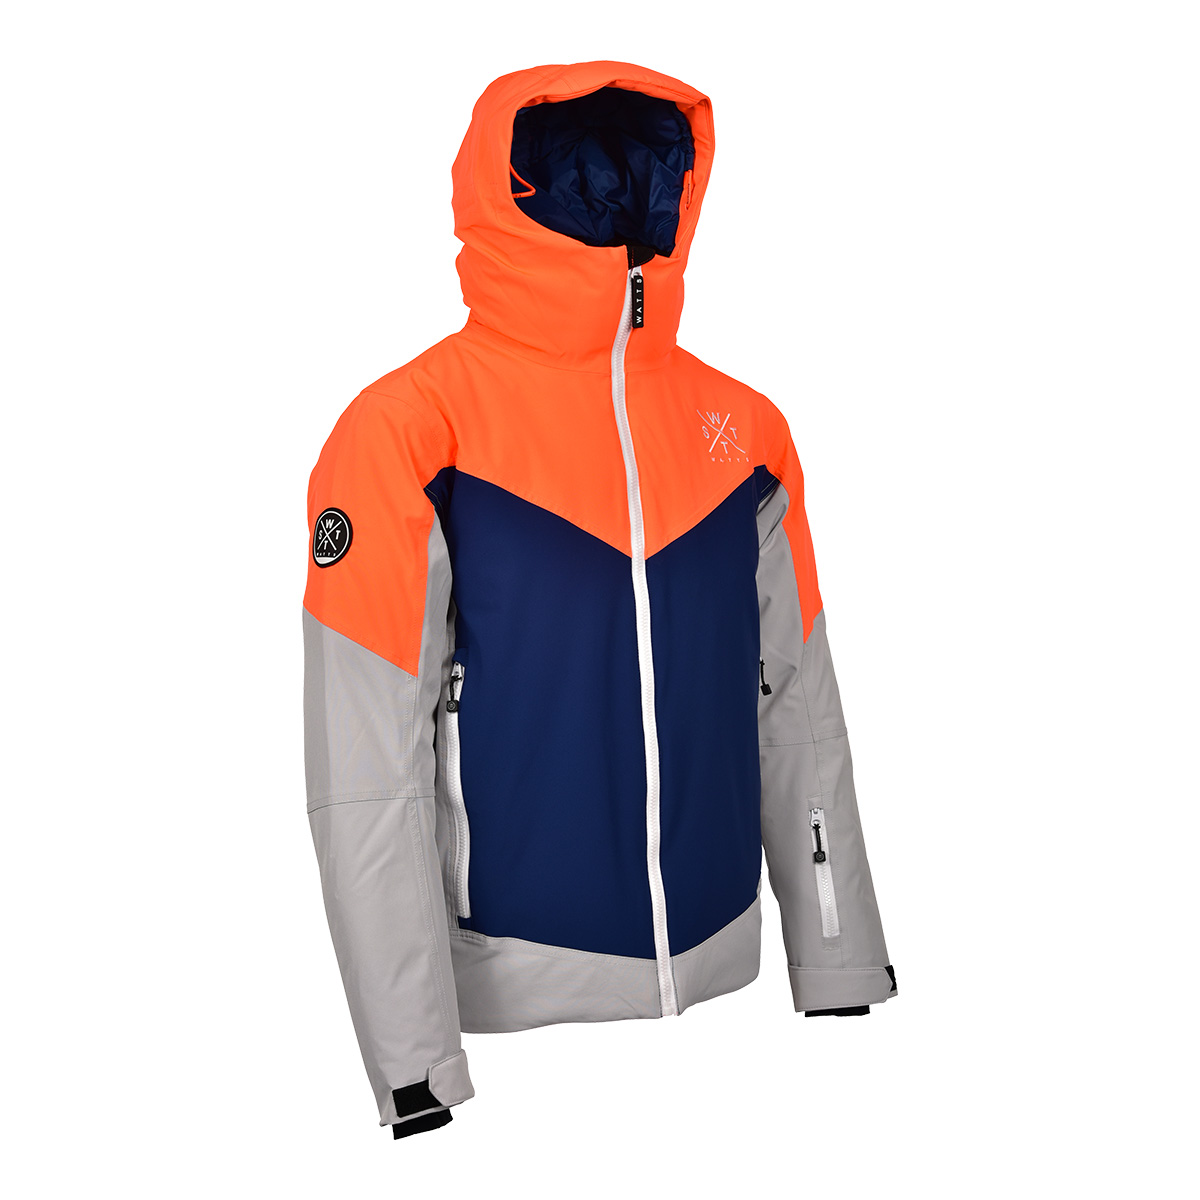 Veste de ski homme MISTY - Orange fluo - 5685